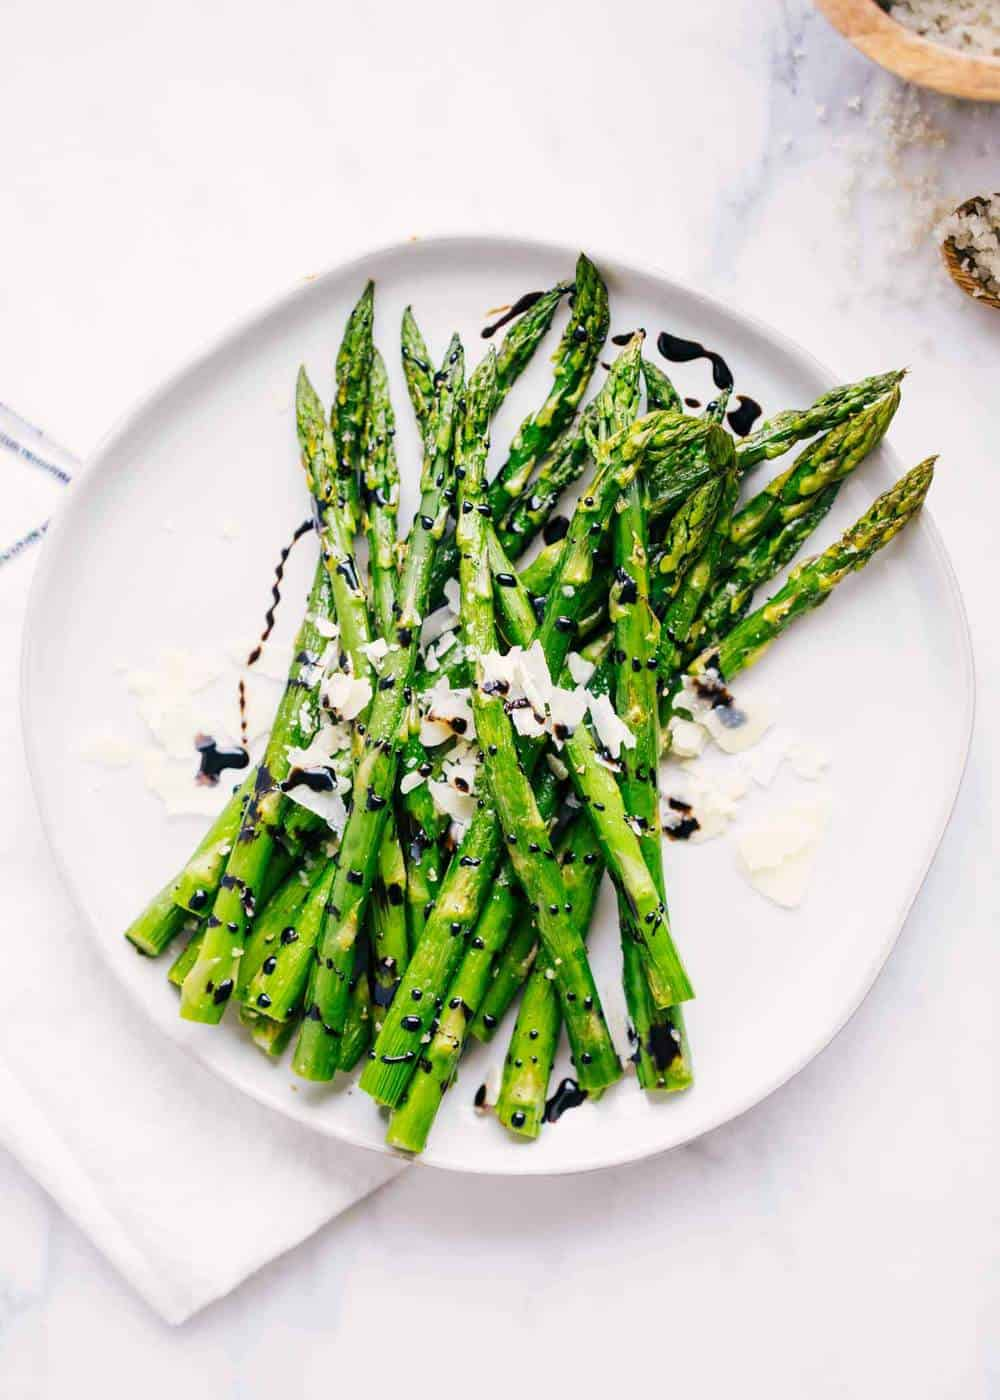 roasted asparagus drizzled with balsamic glaze and fresh shaved parmesan